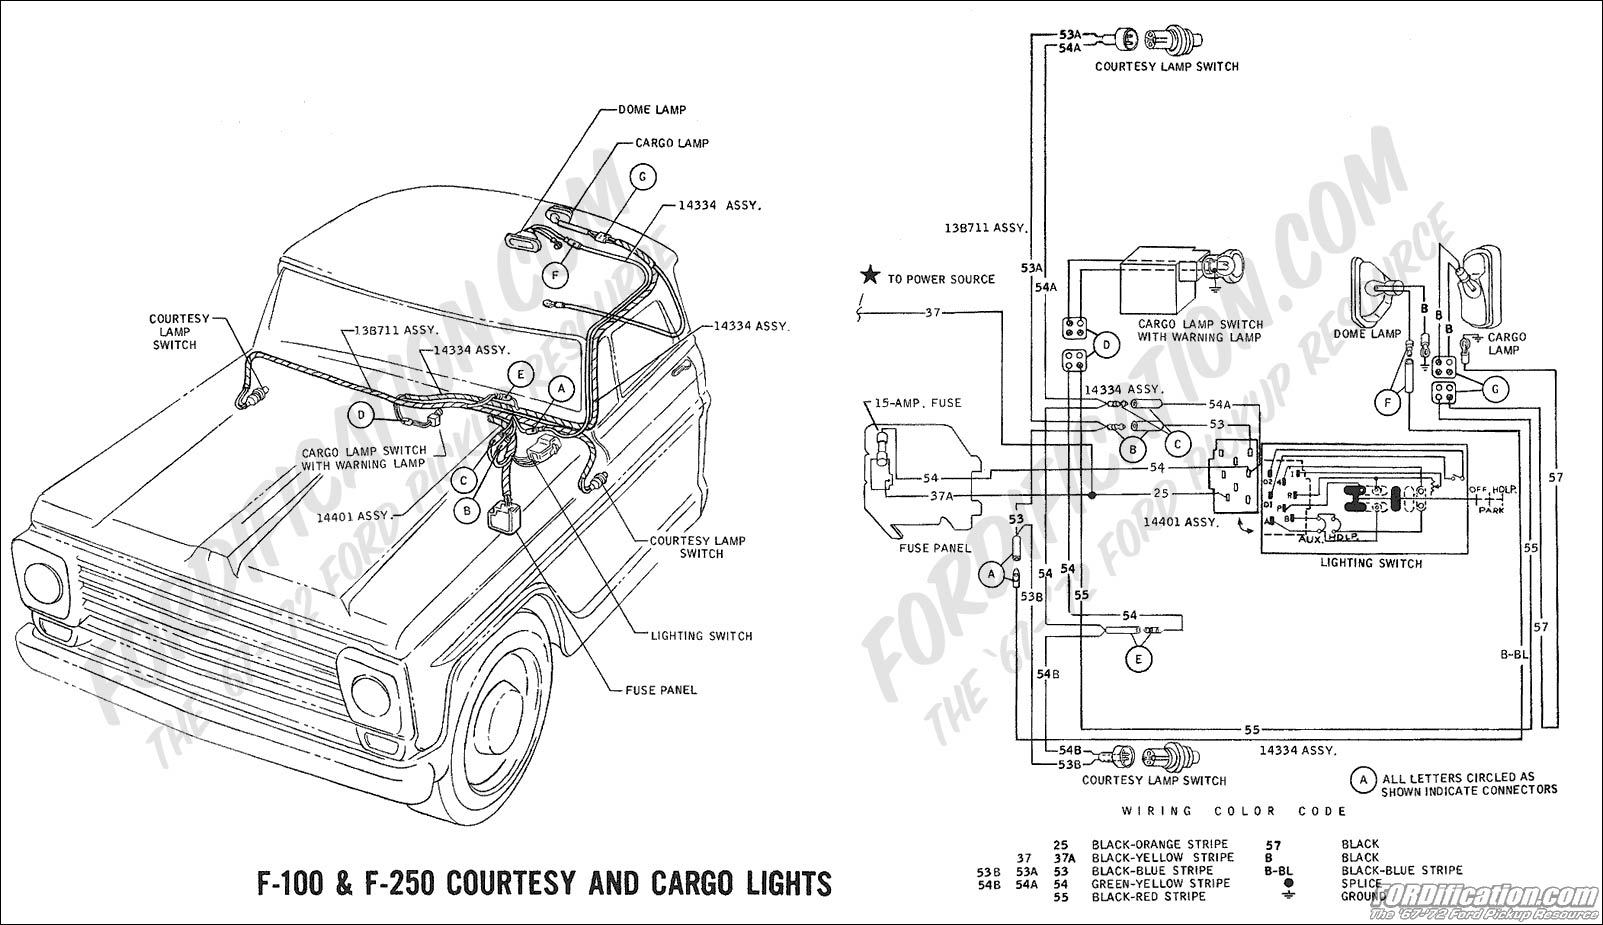 1971 Ford Ignition Wiring Diagram Library 1987 Chevy Truck Cargo Light Technical Drawings And Schematics Section H Rh Fordification Com F100